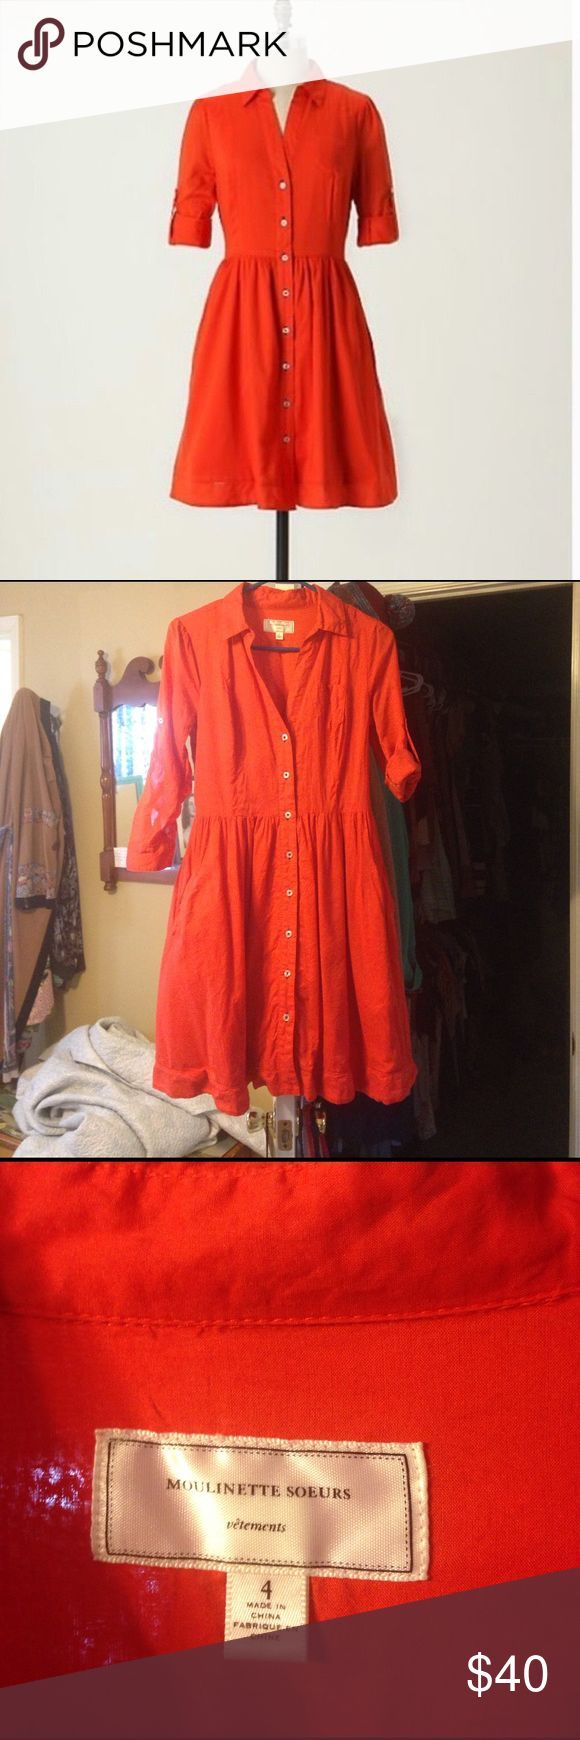 Anthropologie moulinette soeurs red shirt dress 4 So adorable red button down collared shirt dress. Size 4 but runs a little small in the bust. EUC Anthropologie Dresses